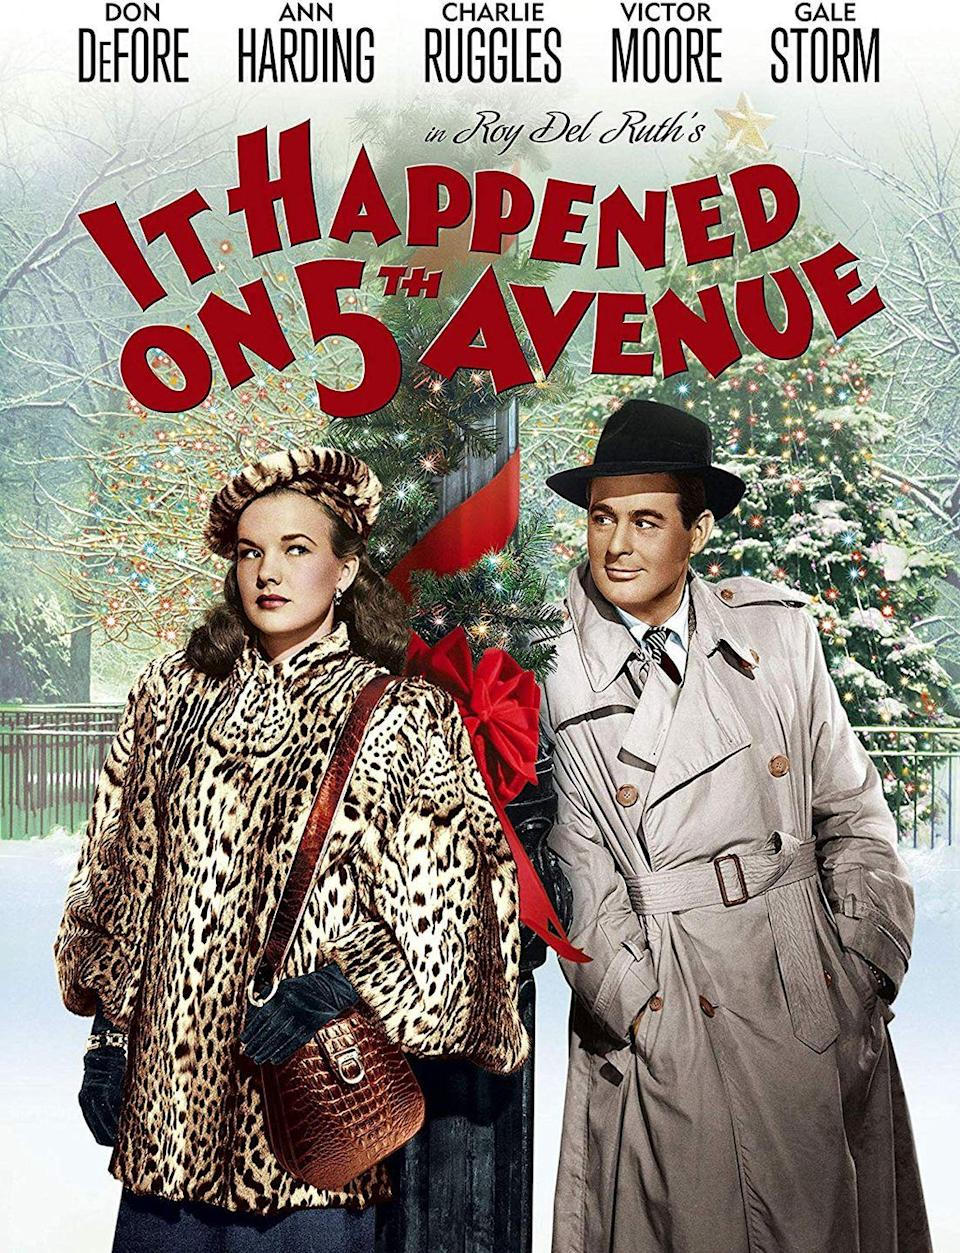 """<p>Set in New York during the holidays, this classic black-and-white film is about a homeless man who squats in a 5th Avenue mansion while the owners are wintering somewhere warmer.</p><p><a class=""""link rapid-noclick-resp"""" href=""""https://www.amazon.com/Happened-5th-Avenue-Don-DeFore/dp/B00AM1YQ84/?tag=syn-yahoo-20&ascsubtag=%5Bartid%7C10055.g.1315%5Bsrc%7Cyahoo-us"""" rel=""""nofollow noopener"""" target=""""_blank"""" data-ylk=""""slk:WATCH NOW"""">WATCH NOW</a></p>"""